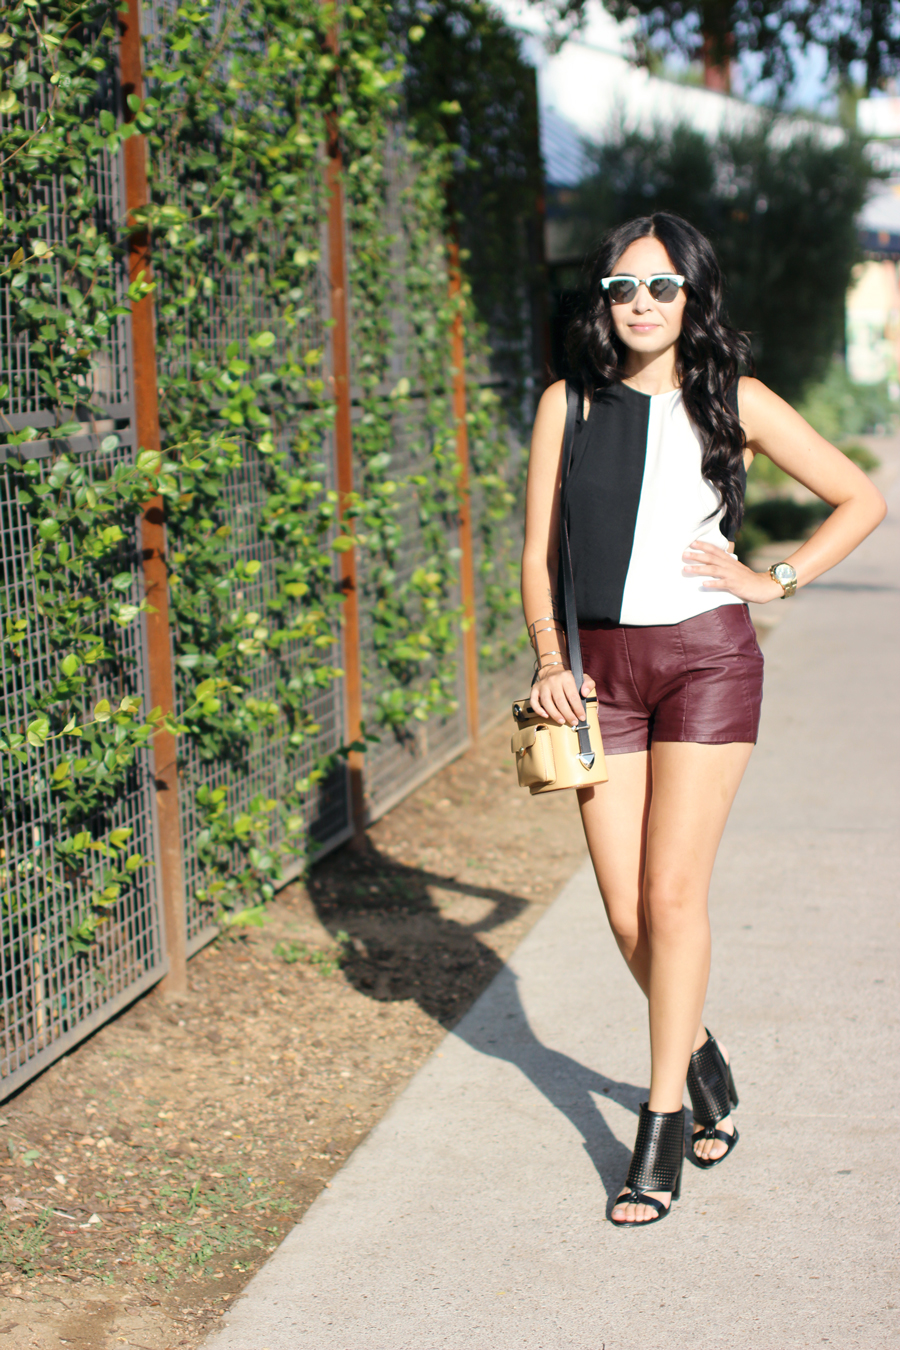 FIXIN-TO-THRILL-COLOR-BLOCK-LEATHER-SHORTS-CURLING-WAND-BLACK-WHITE-FALL-ATX-AUSTIN-STYLE-BLOG-SHIRTS-COLORS-TRENDS-FW15-TRENDY-CHIC-GLAM-FASHION-TEXAS-10